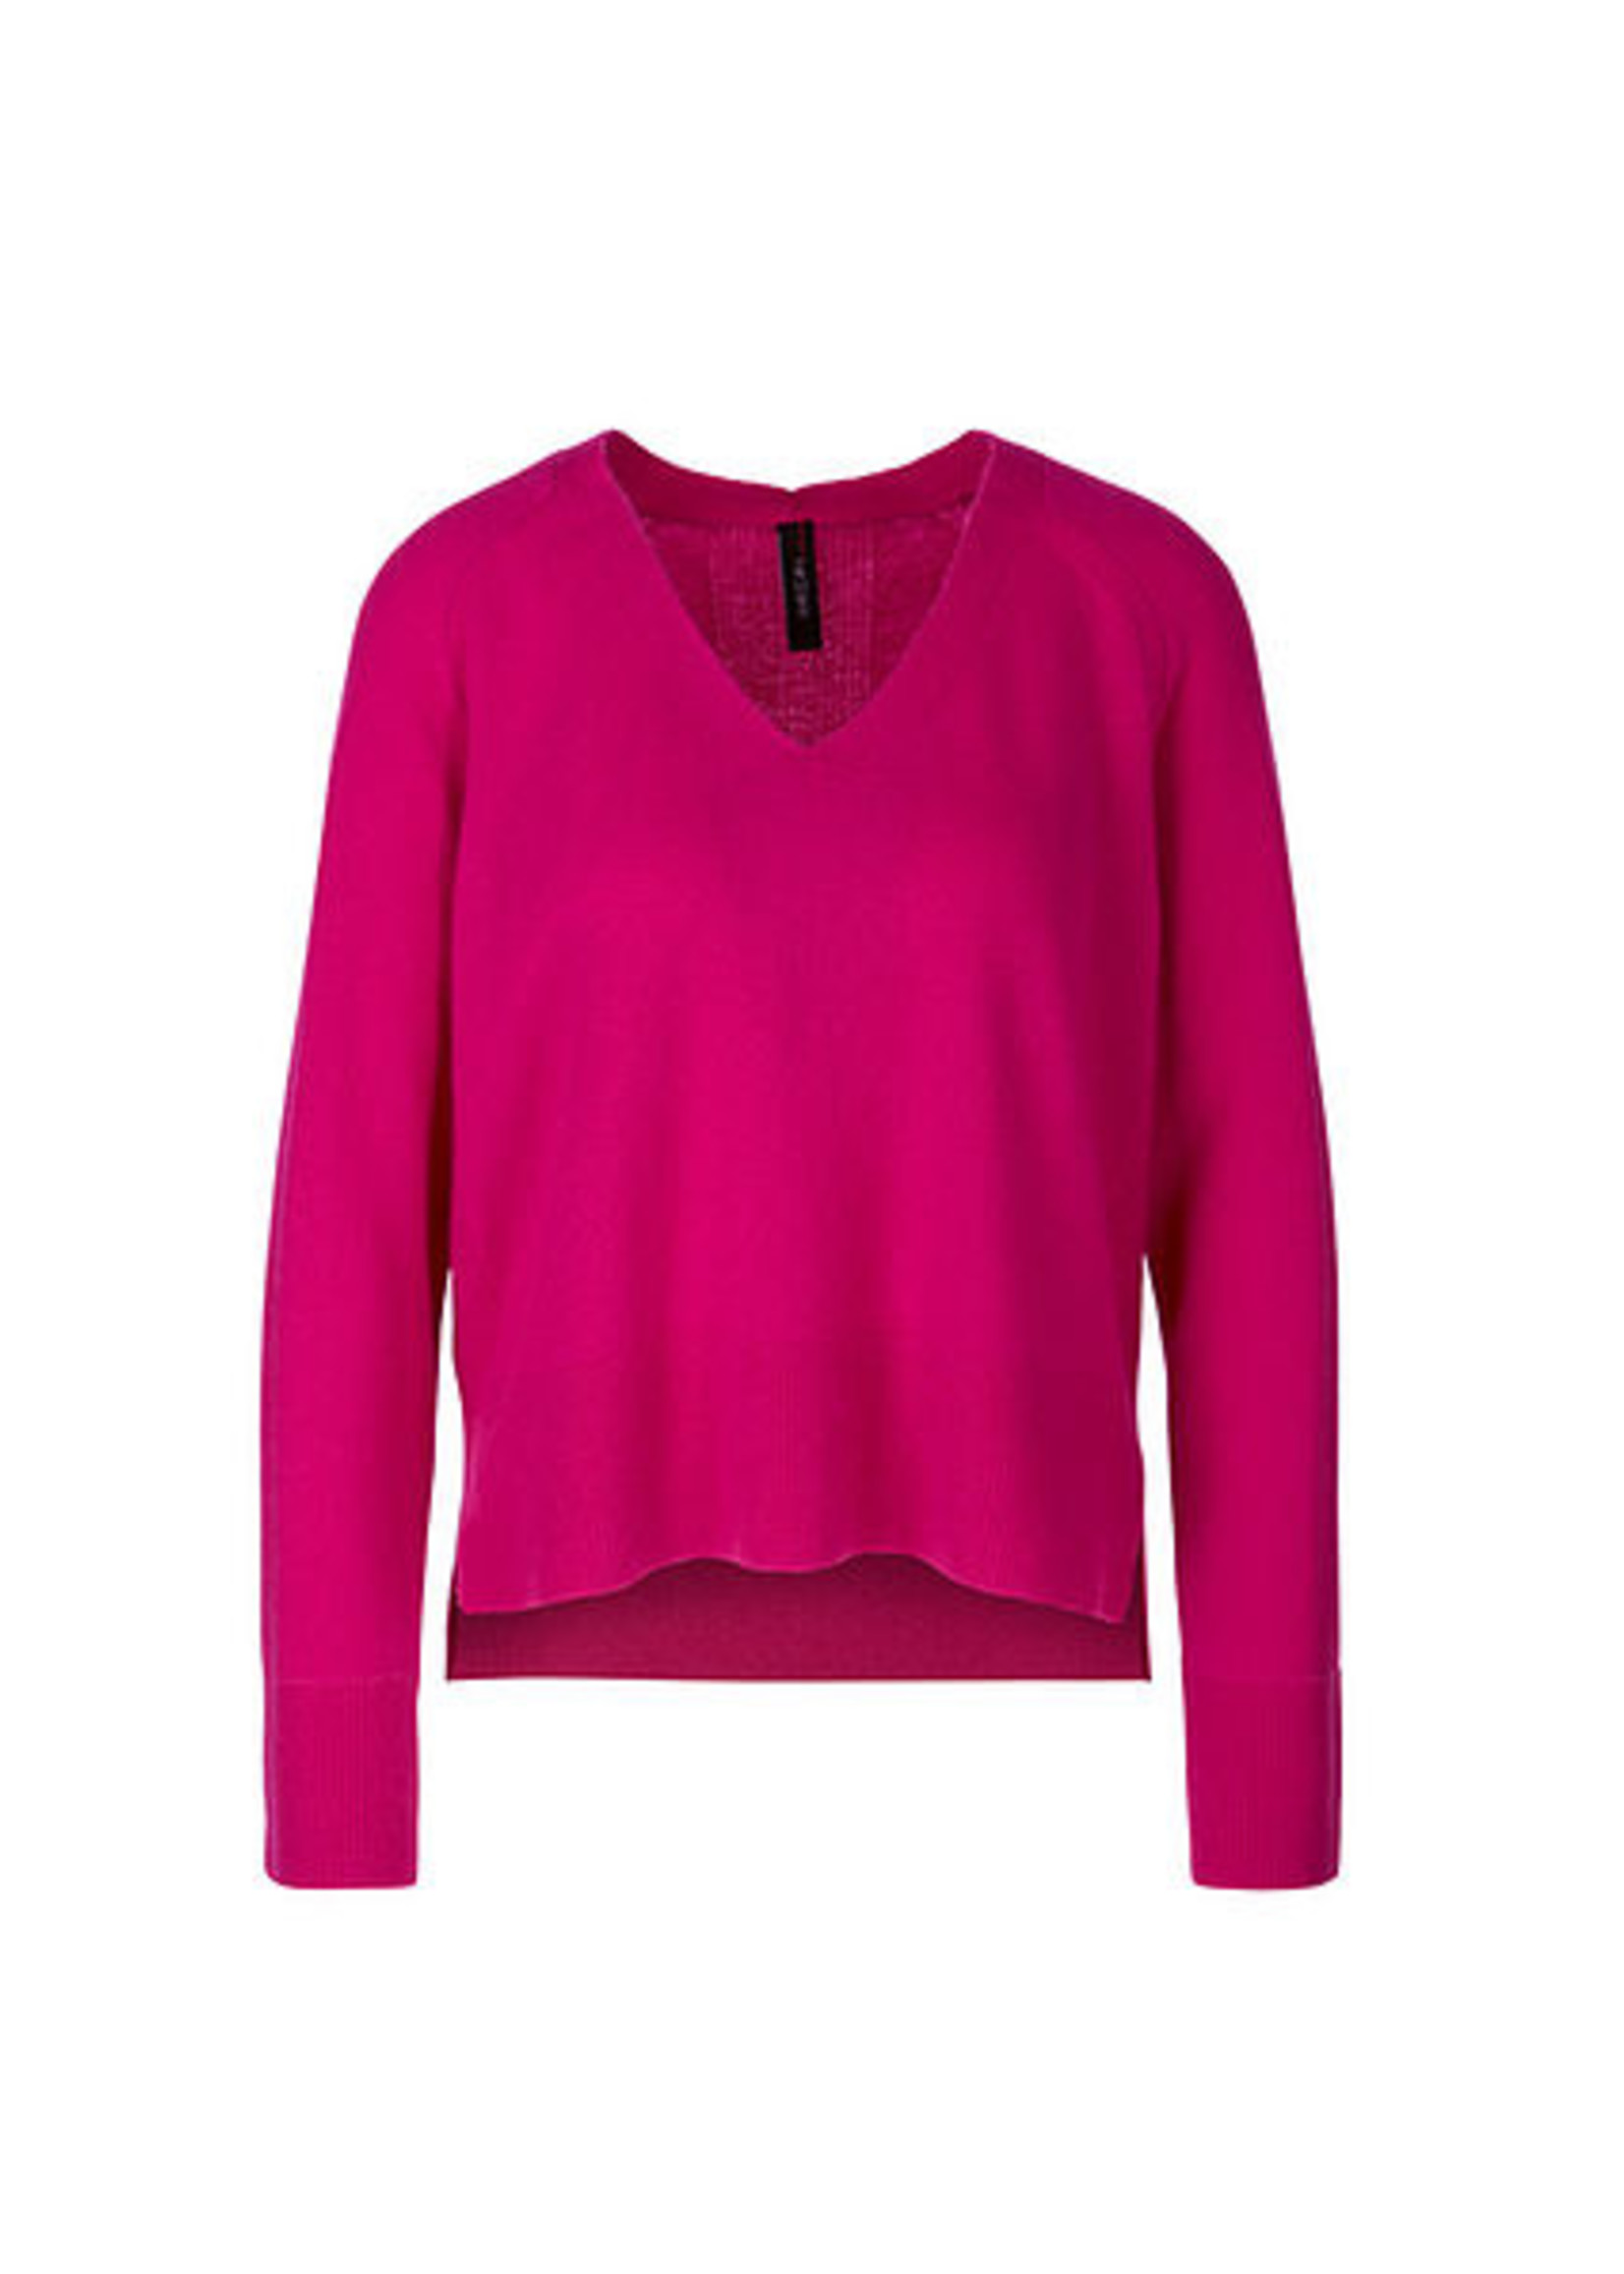 Marccain Sports Sweater RS 41.07 M52 fresh magenta